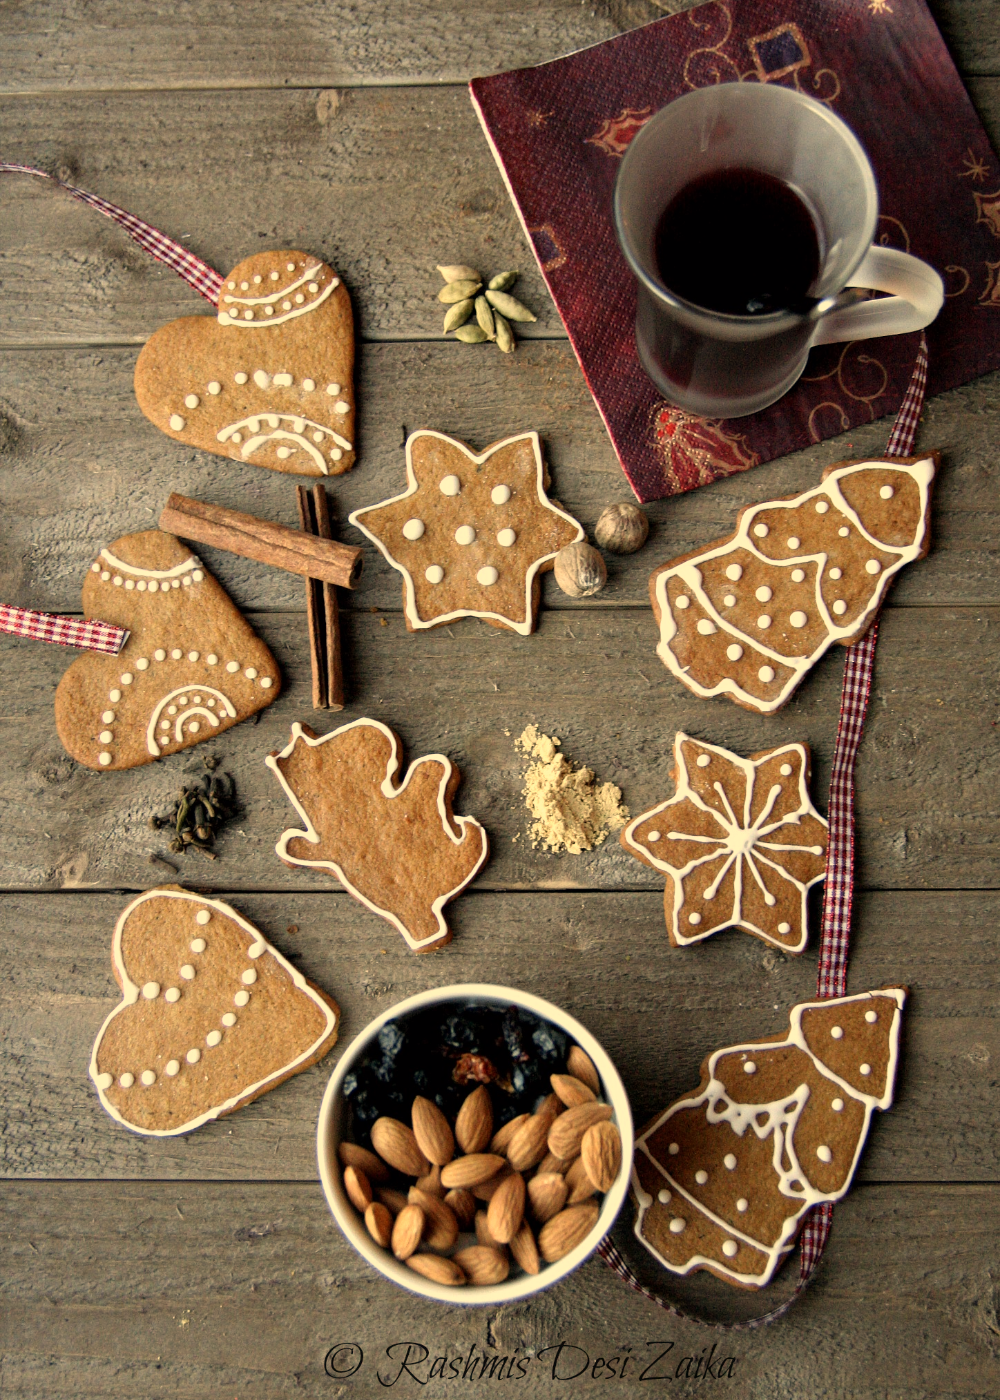 Piparkakku-Traditional Finnish Christmas Cookies